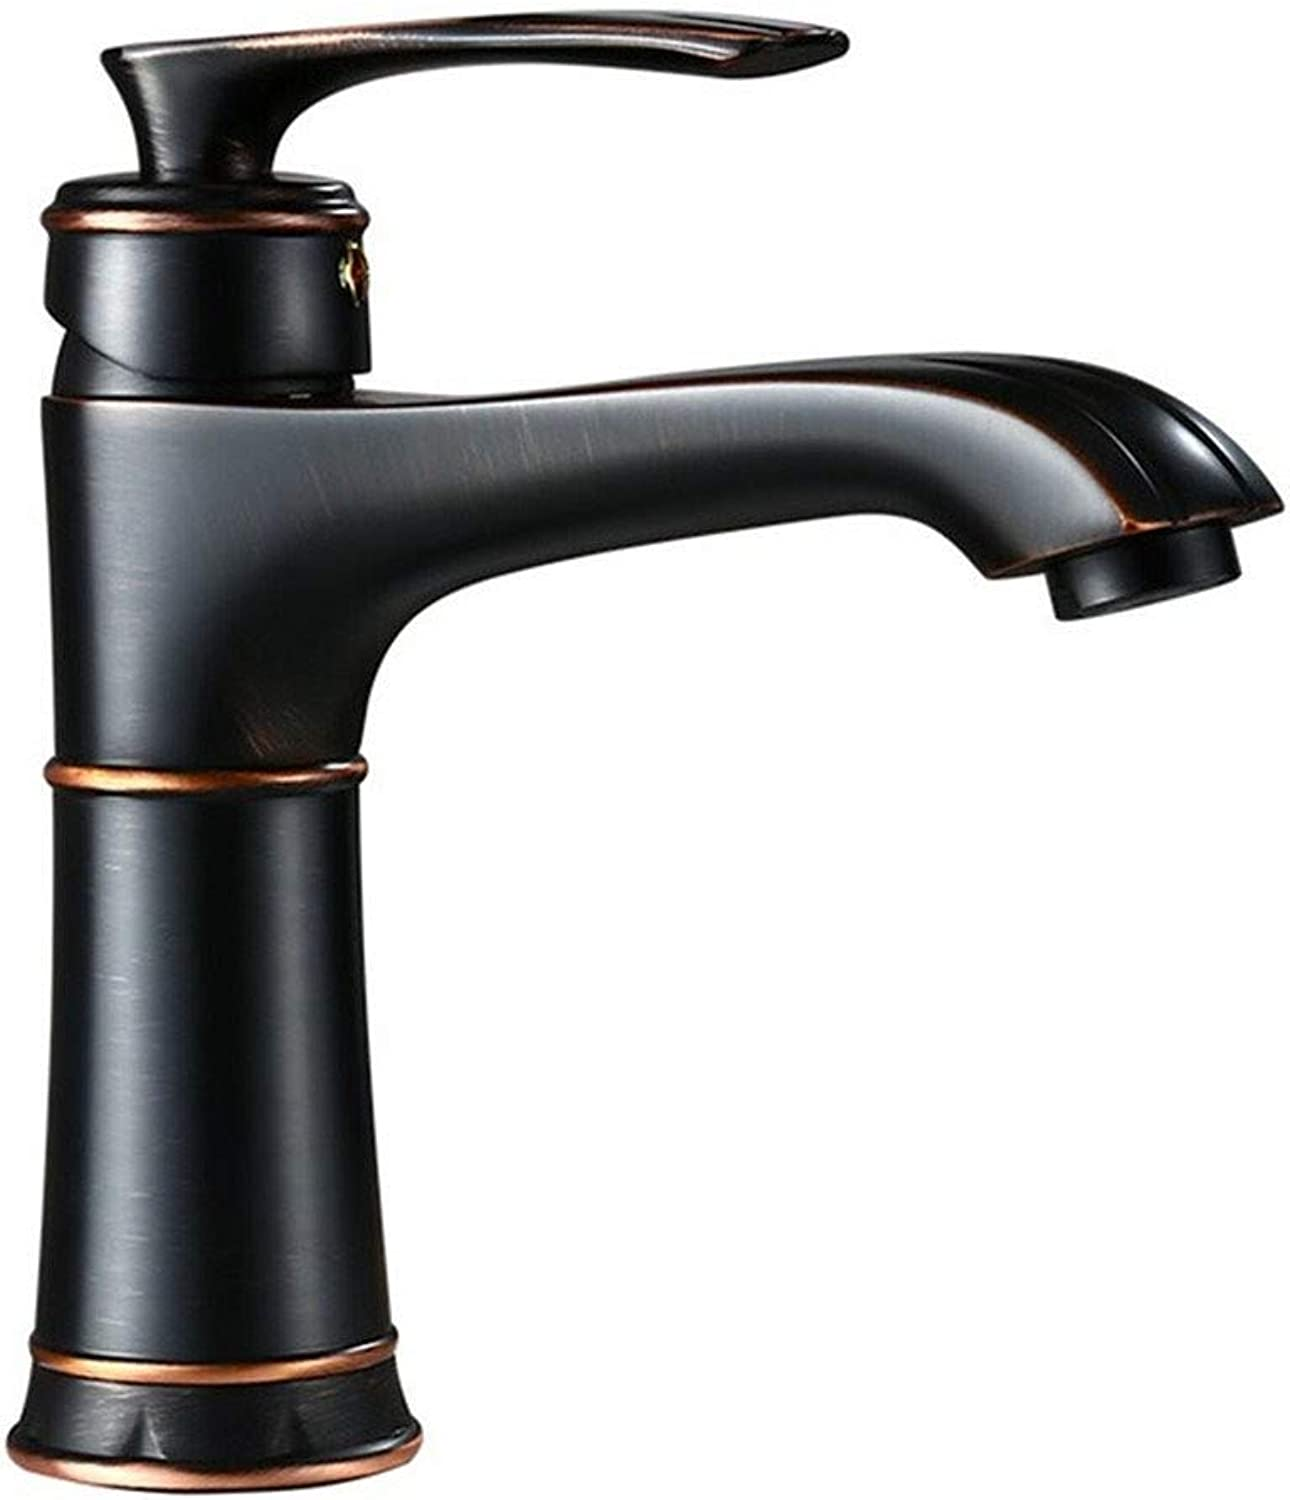 Basin Taps Swivel Spout Faucet Faucet Simple Fashion Washbasin Basin Water Bathroom Faucet Copper Single Hole Hot and Cold